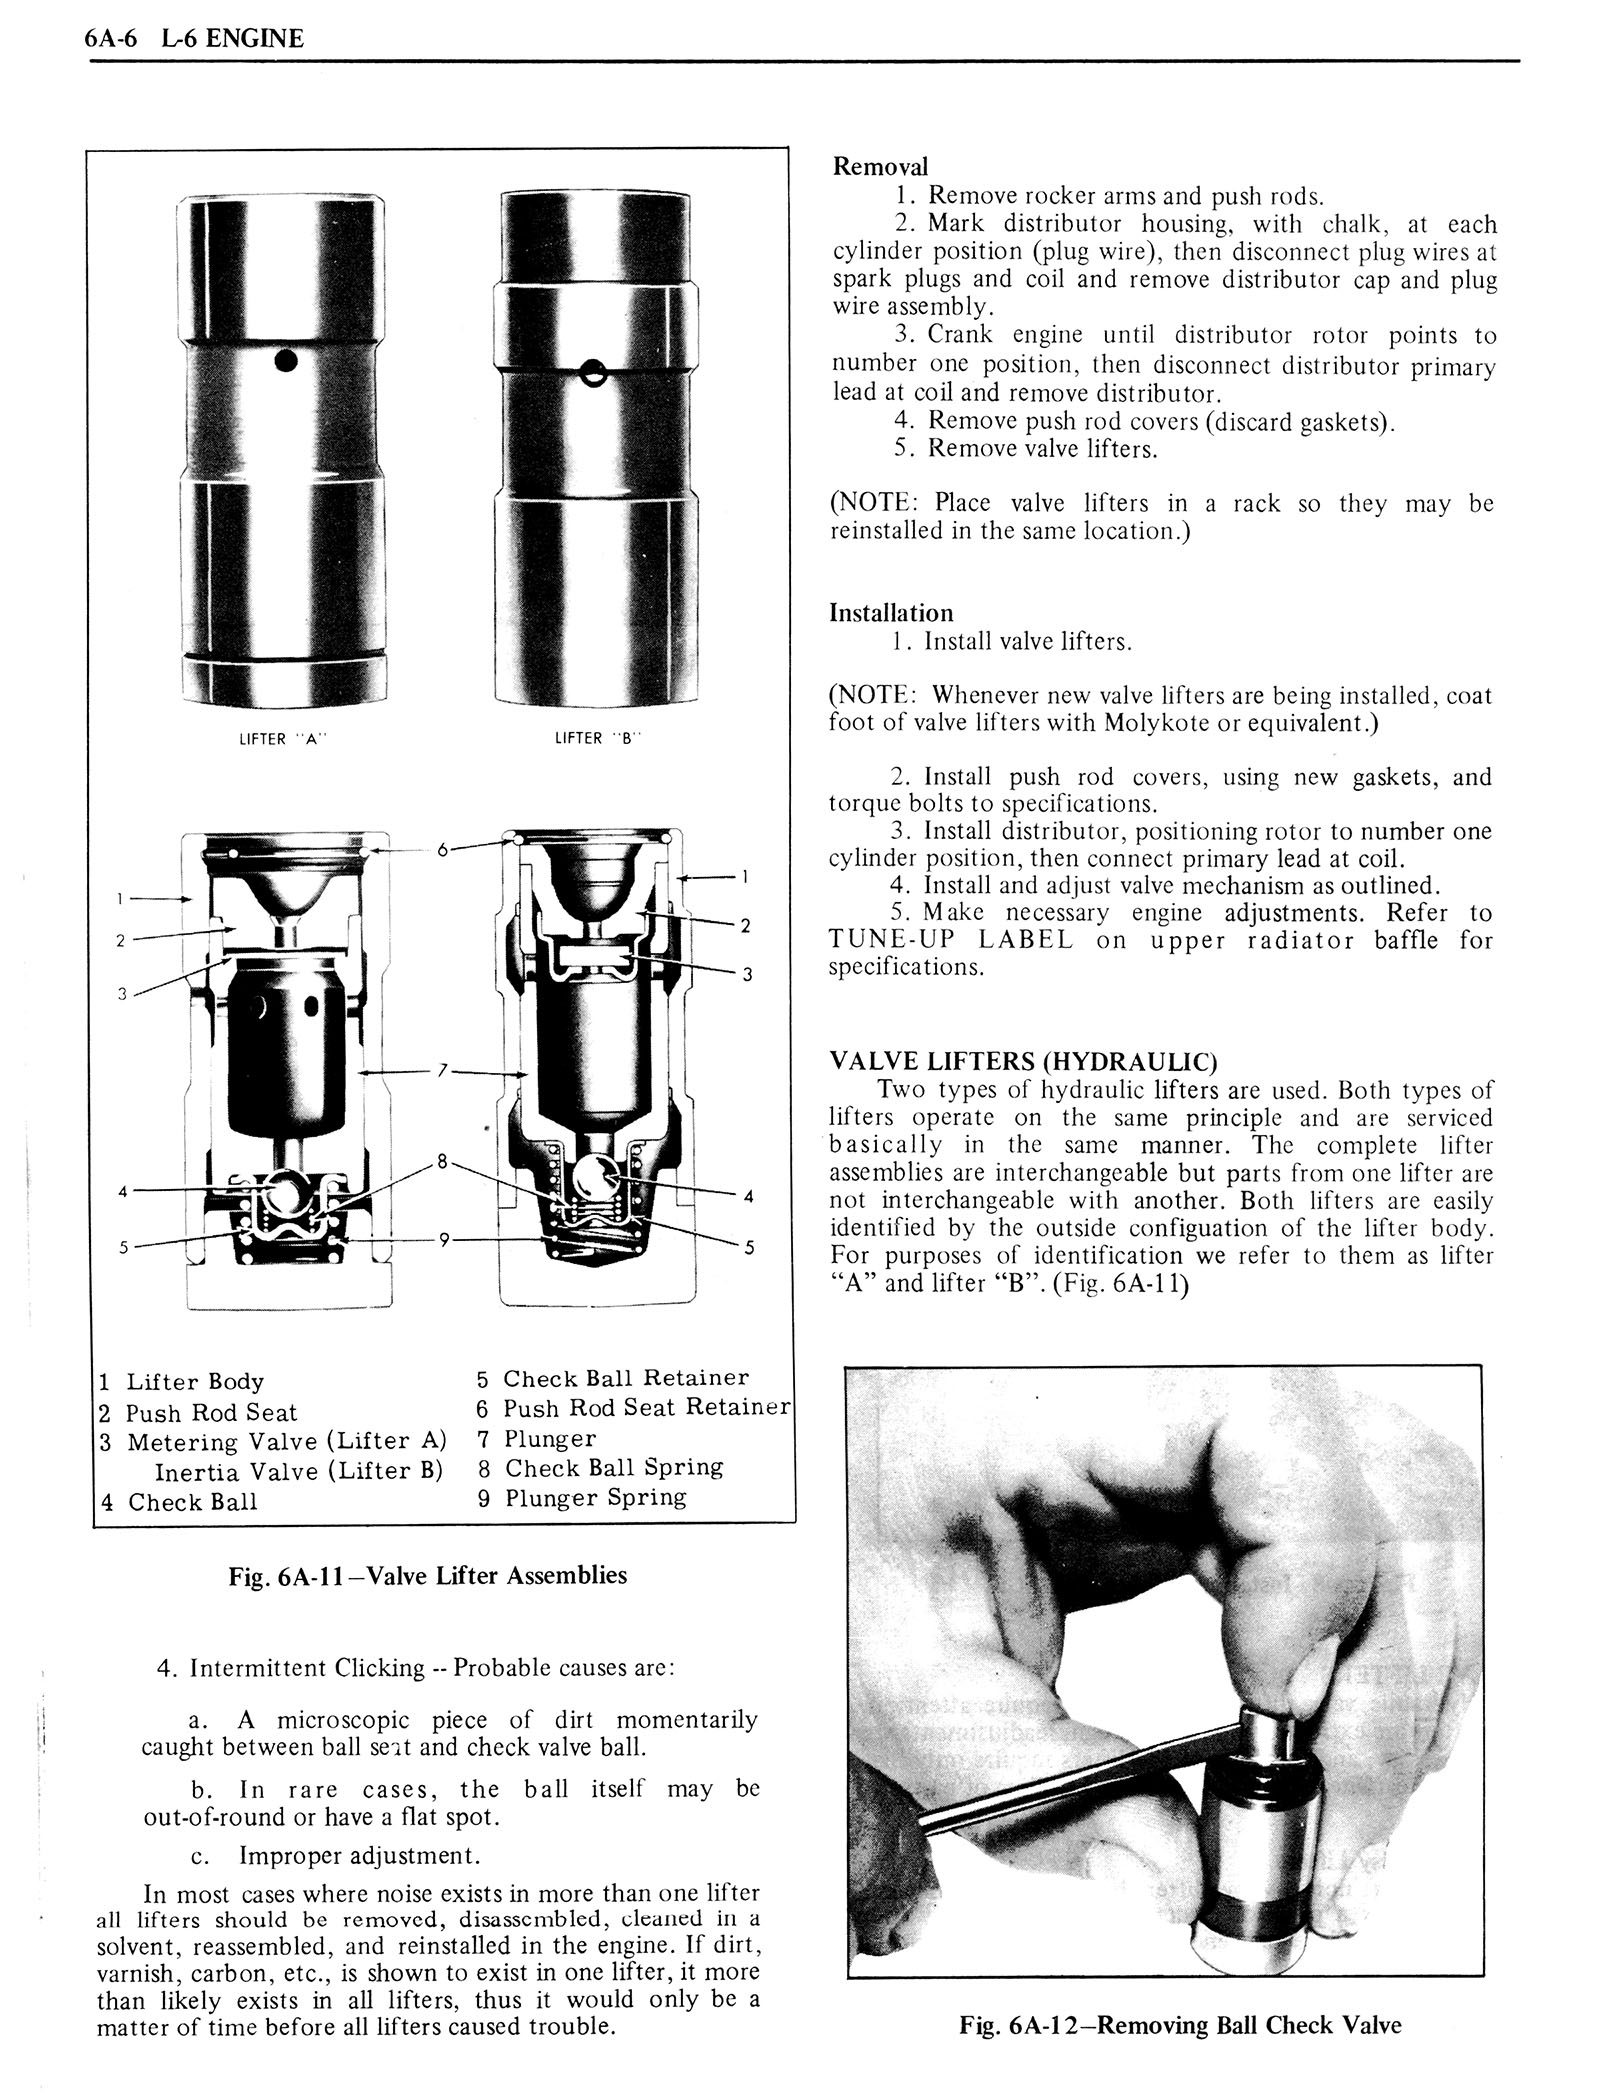 1976 Oldsmobile Service Manual page 403 of 1390